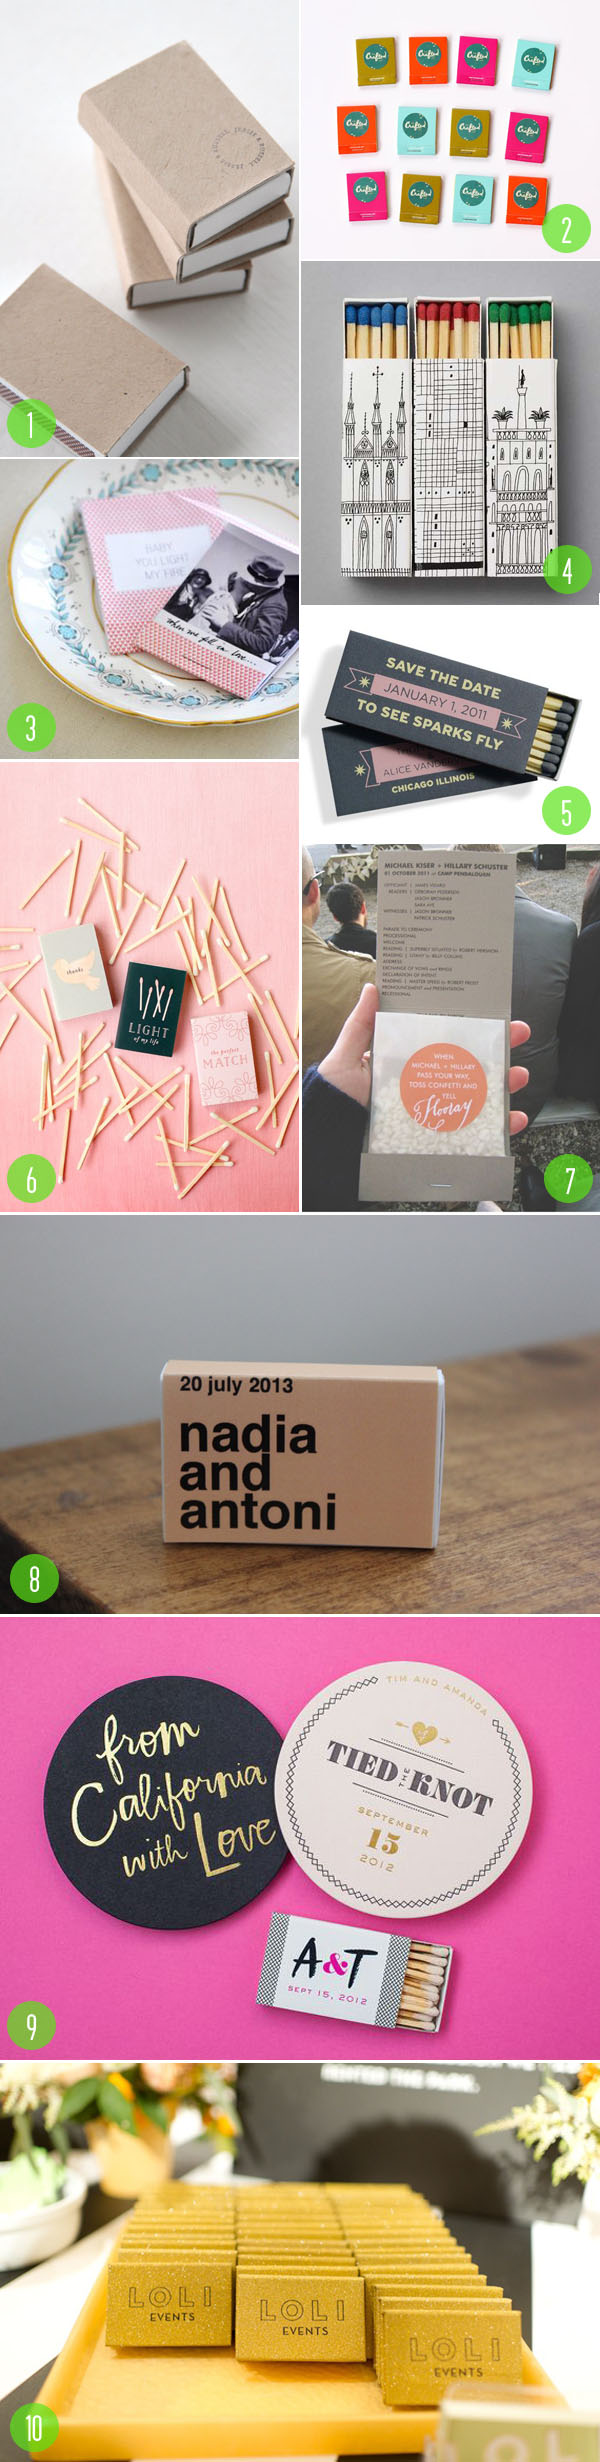 top 10: matchbooks